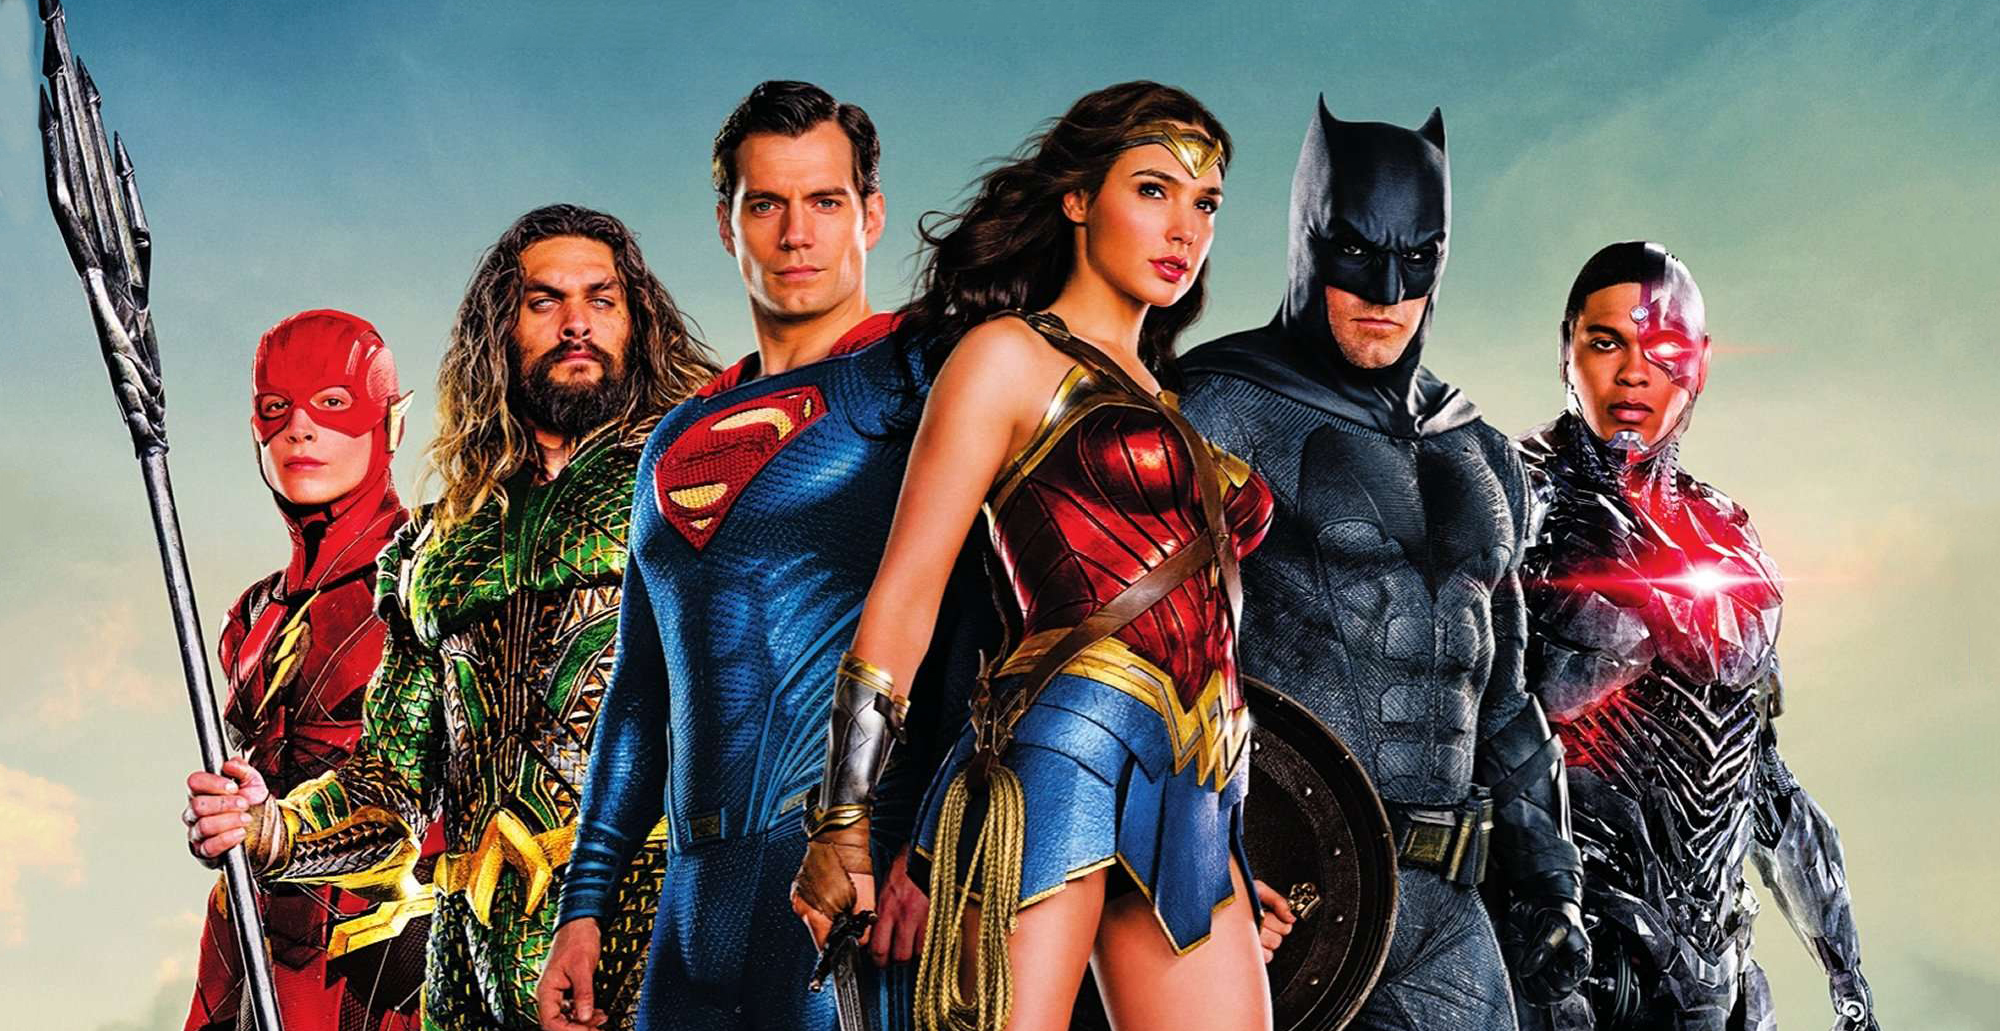 Justice League Movie Poster, HD Movies, 4k Wallpapers ...